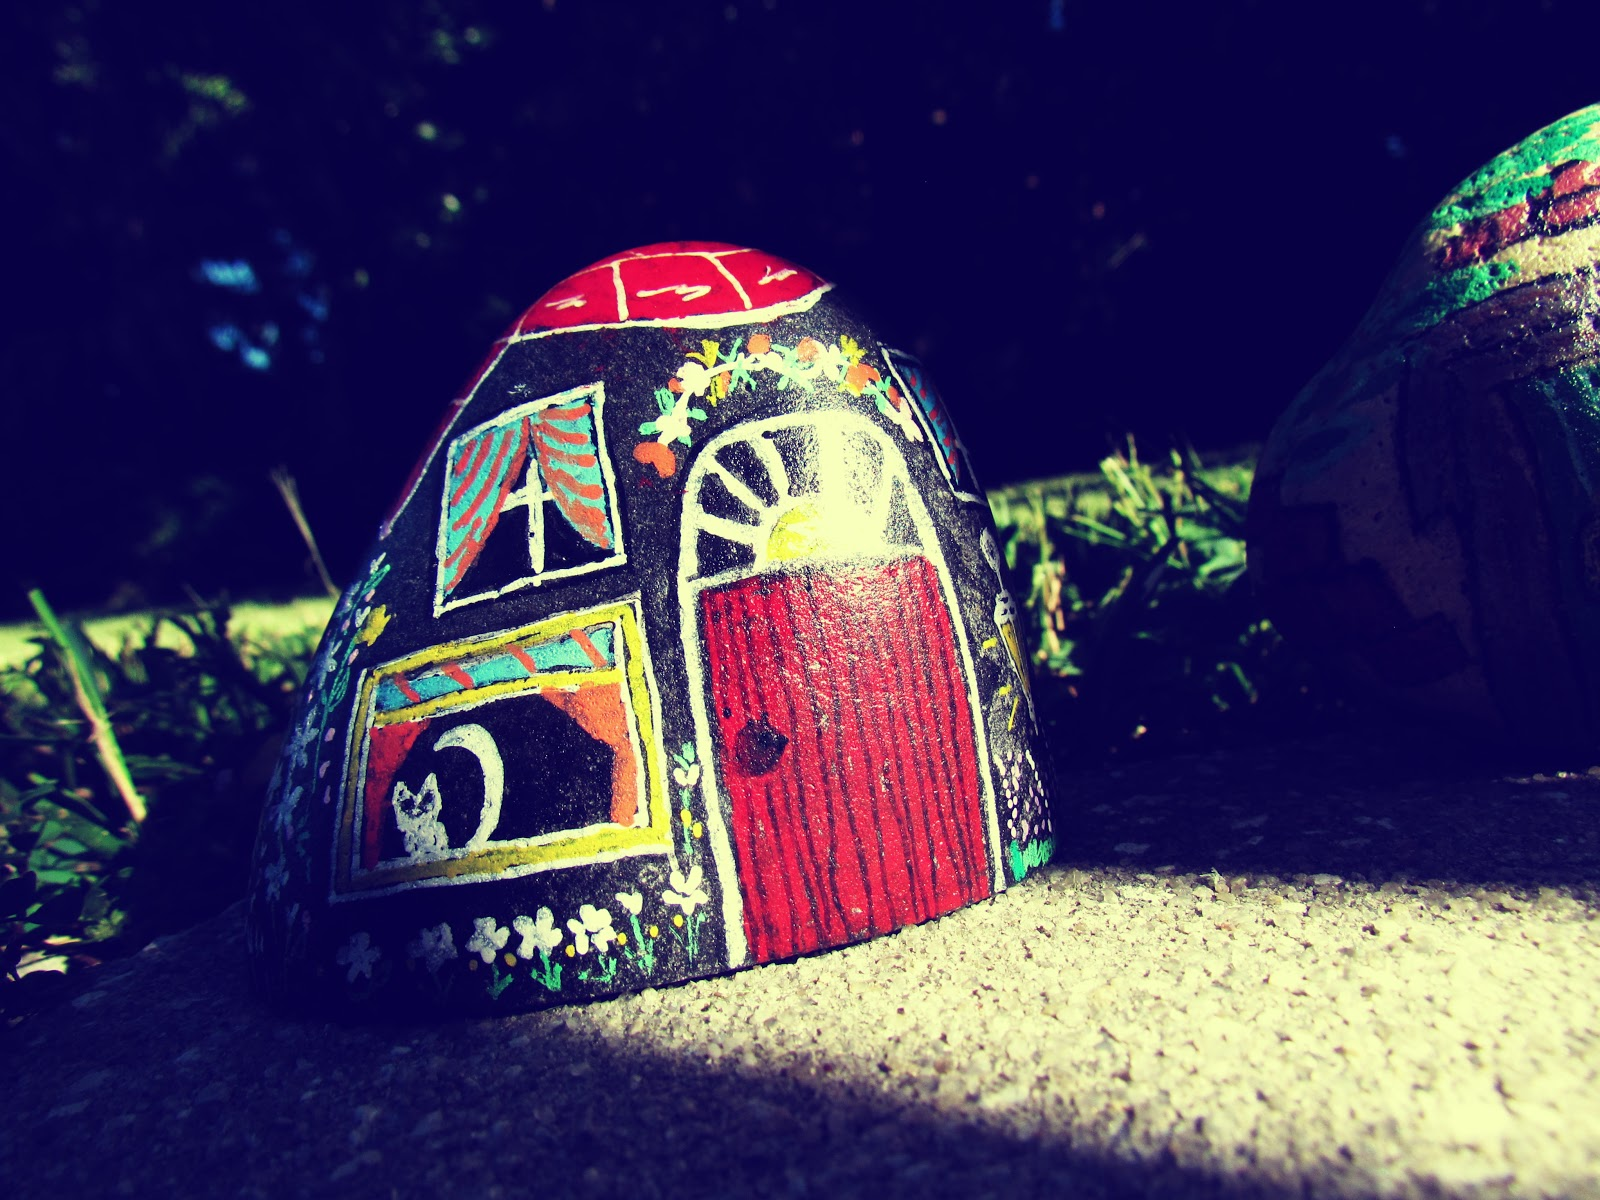 A painted rock fairy house on the grass in a backyard in mother nature